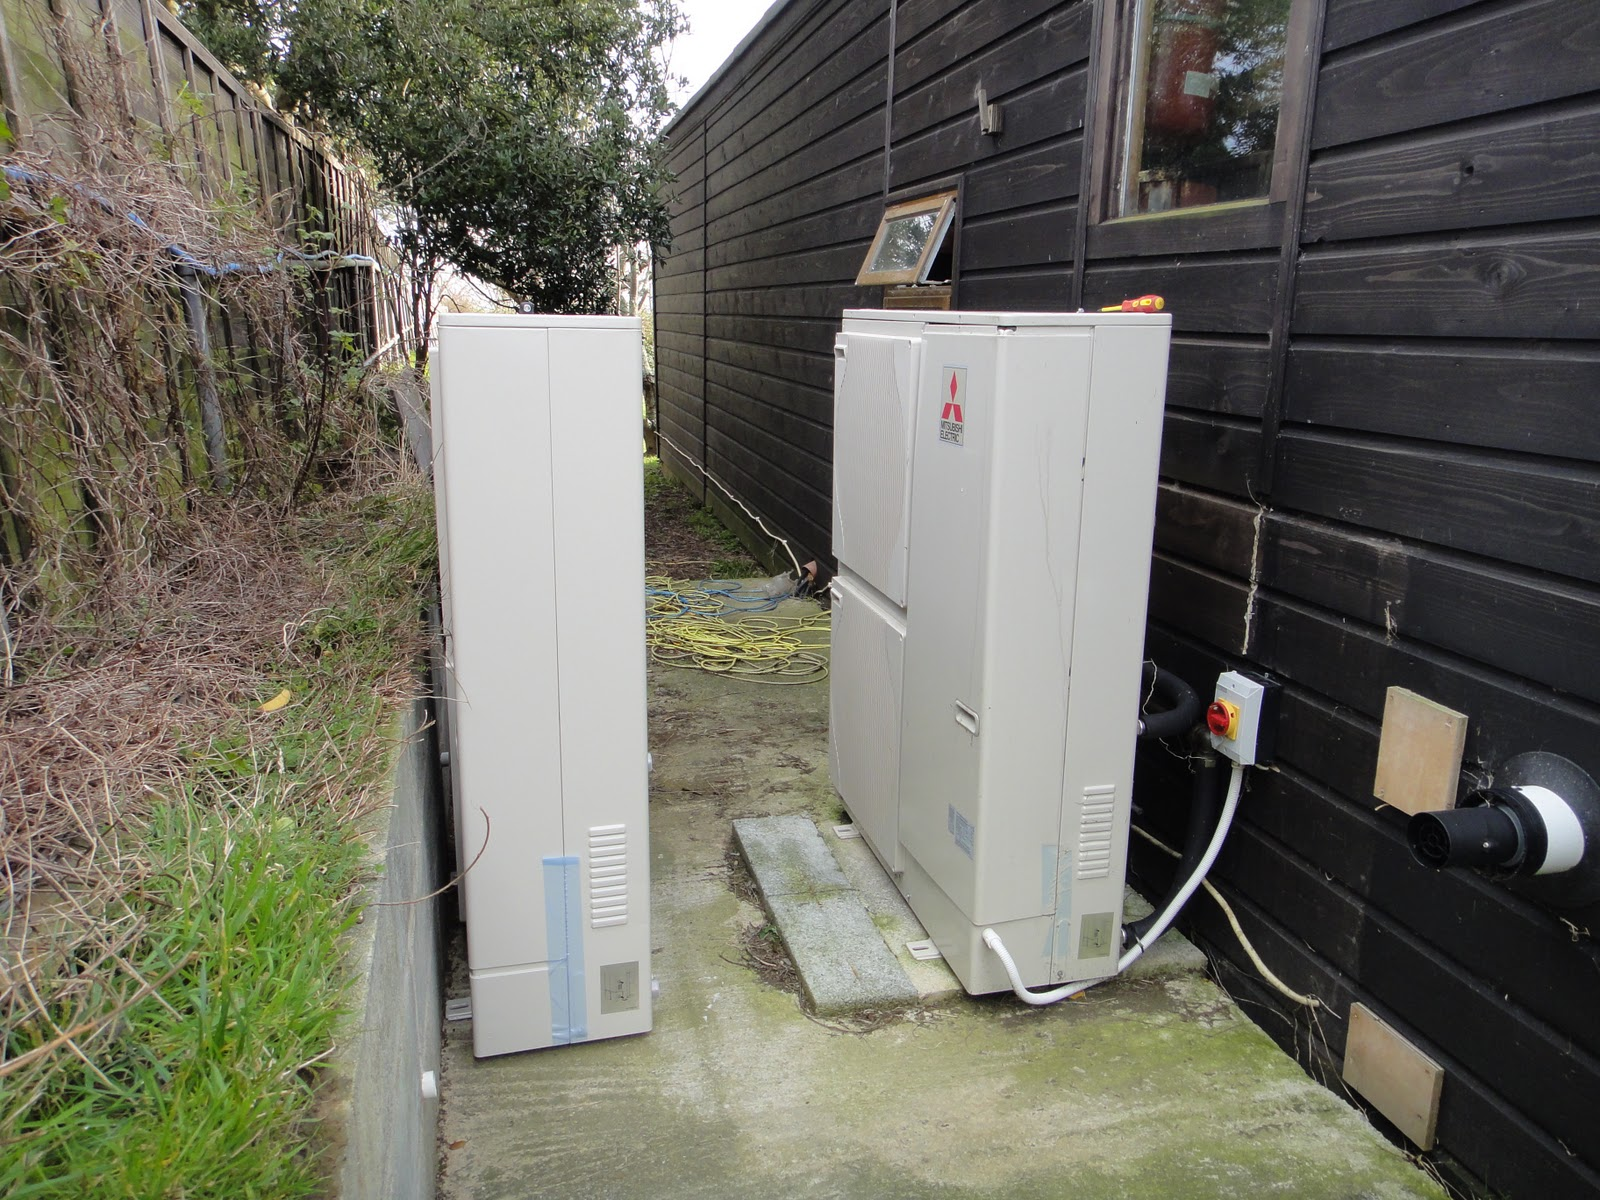 to electrify the heating systems and move away from fossil fuels #4E652B